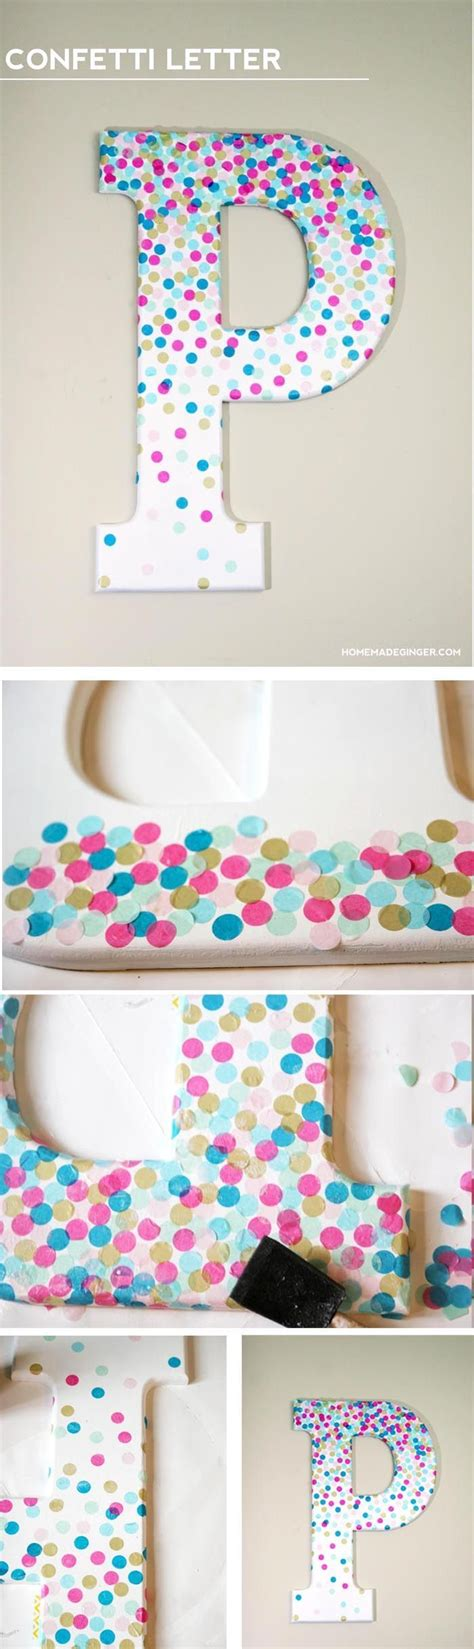 Paperbag Polkadot Tebal Ungu 91 best images about polka dot ideas on paper garlands treat bags and tablecloths